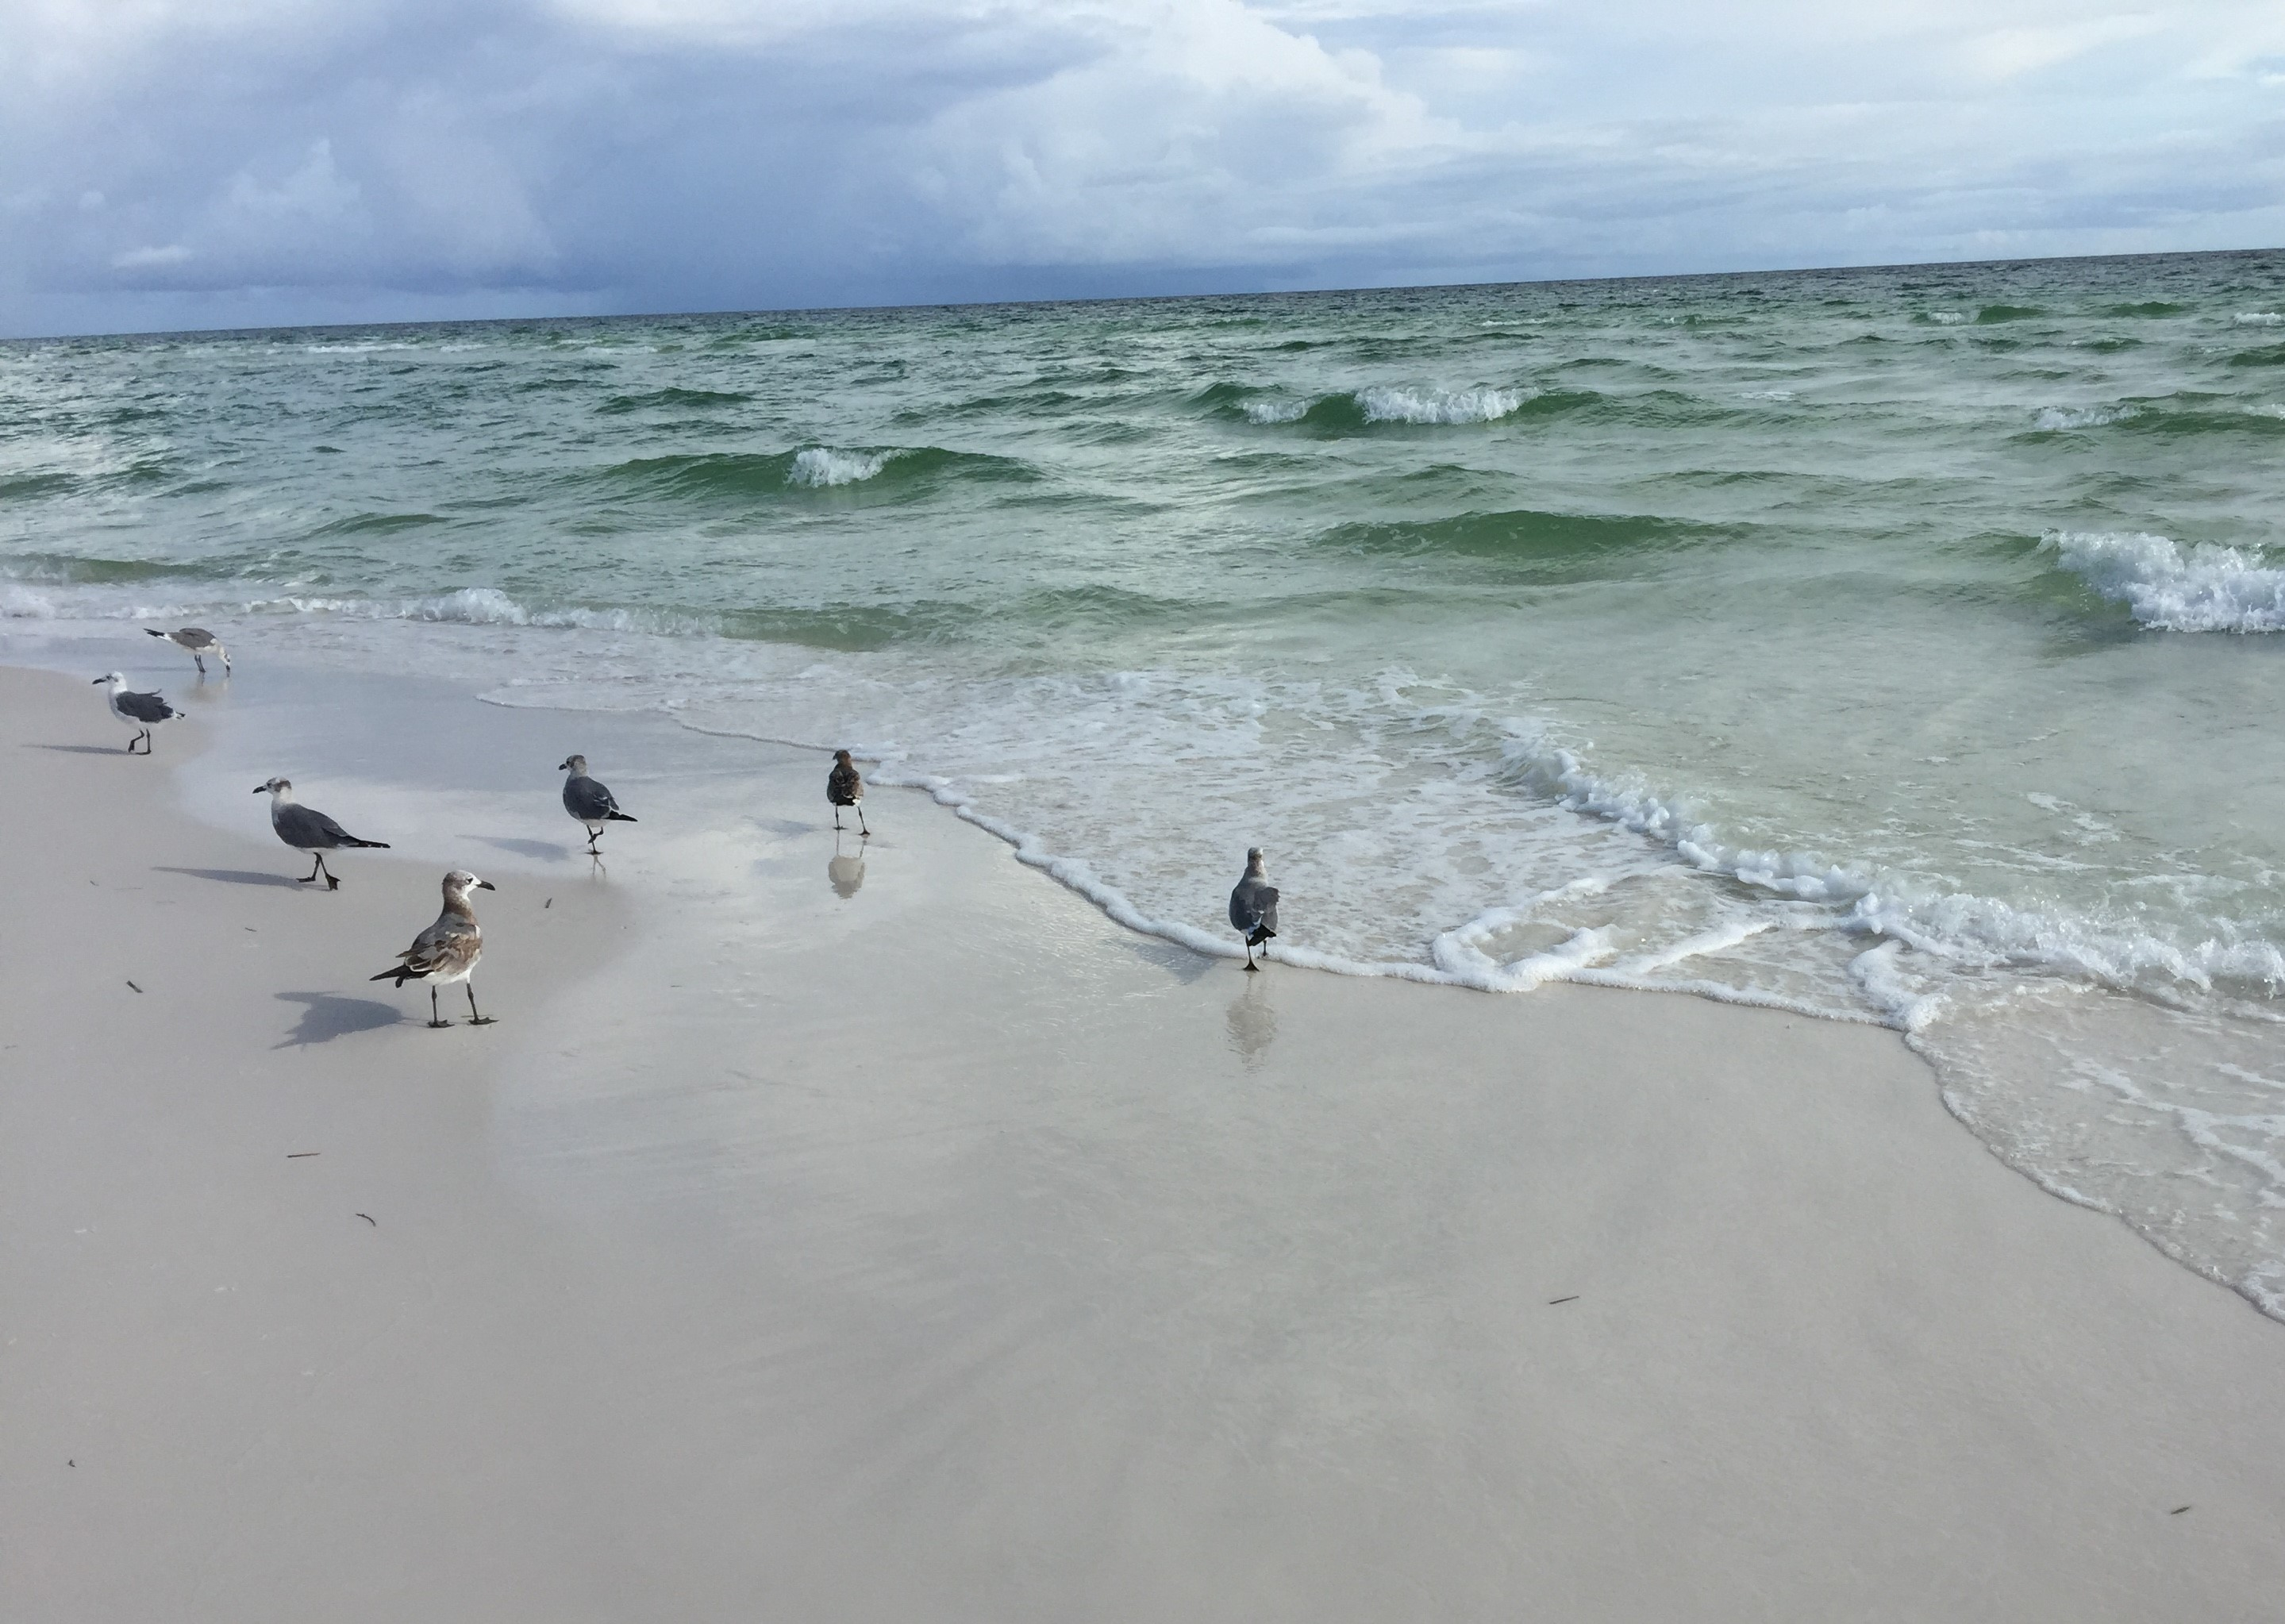 Some shorebirds I came across on a beach walk during a trip to the Florida panhandle a month ago